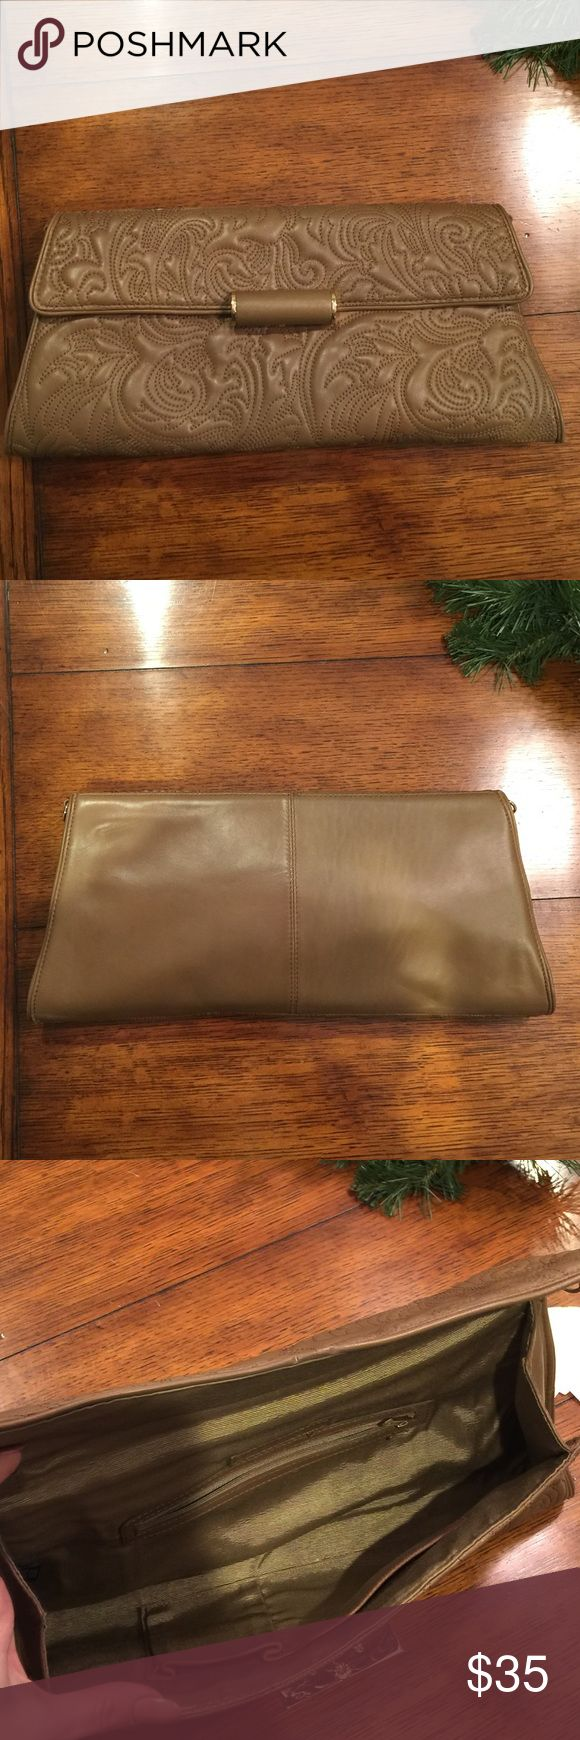 BCBG Clutch Beautiful leather large envelope clutch!  Worn only a few times. BCBG Bags Clutches & Wristlets